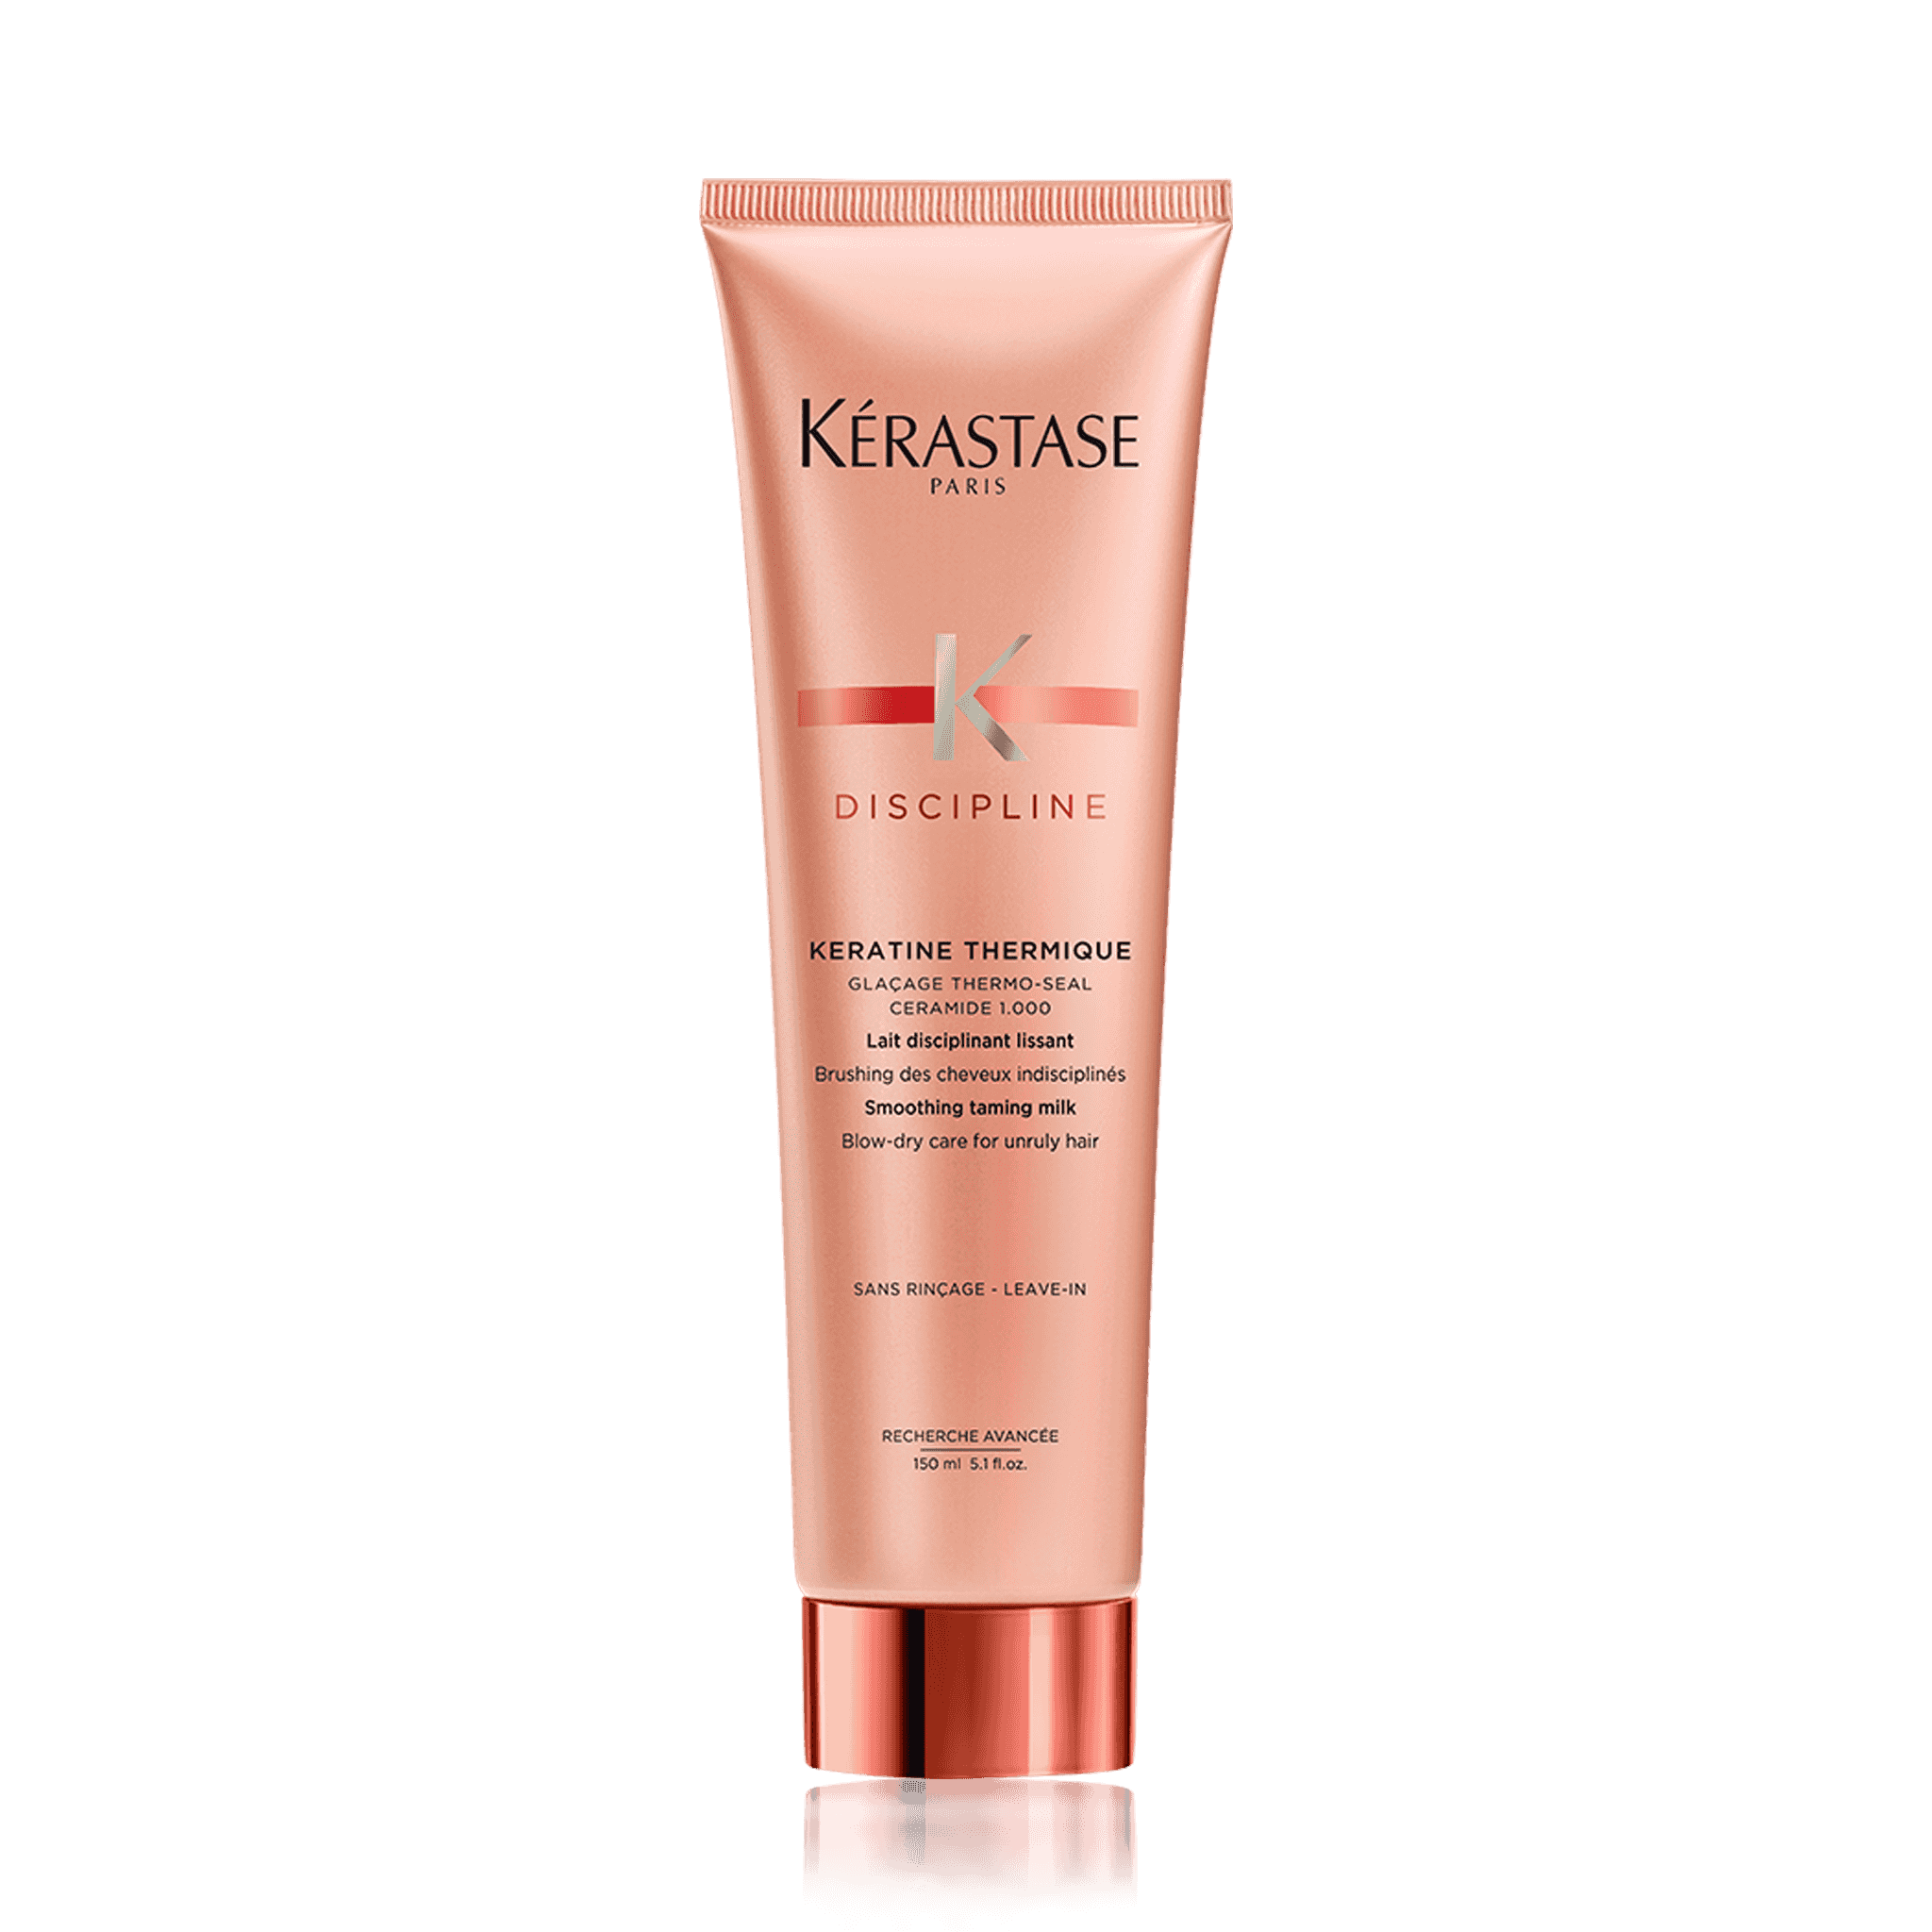 Keratine Thermique Heat Protector For Thick and Sensitized Hair